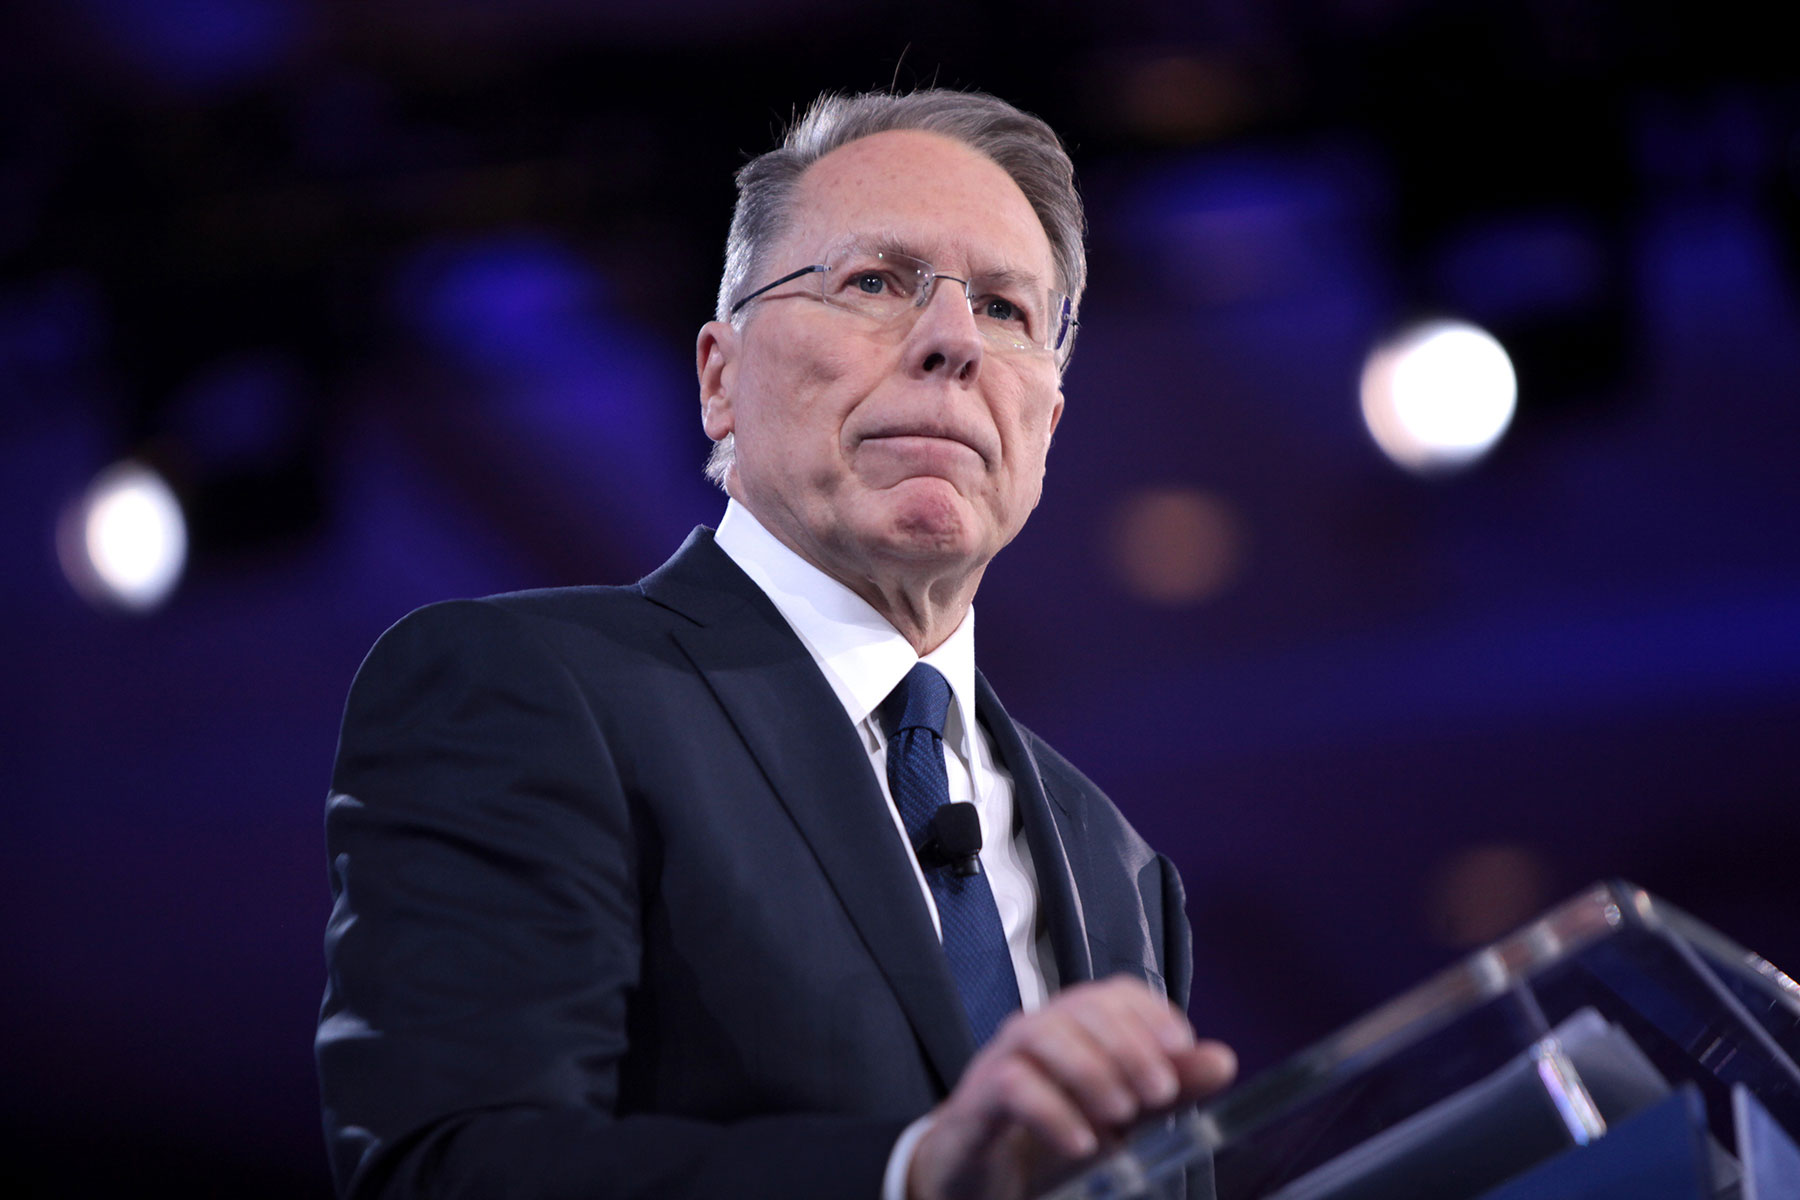 NRA under fire for banning firearms at forum